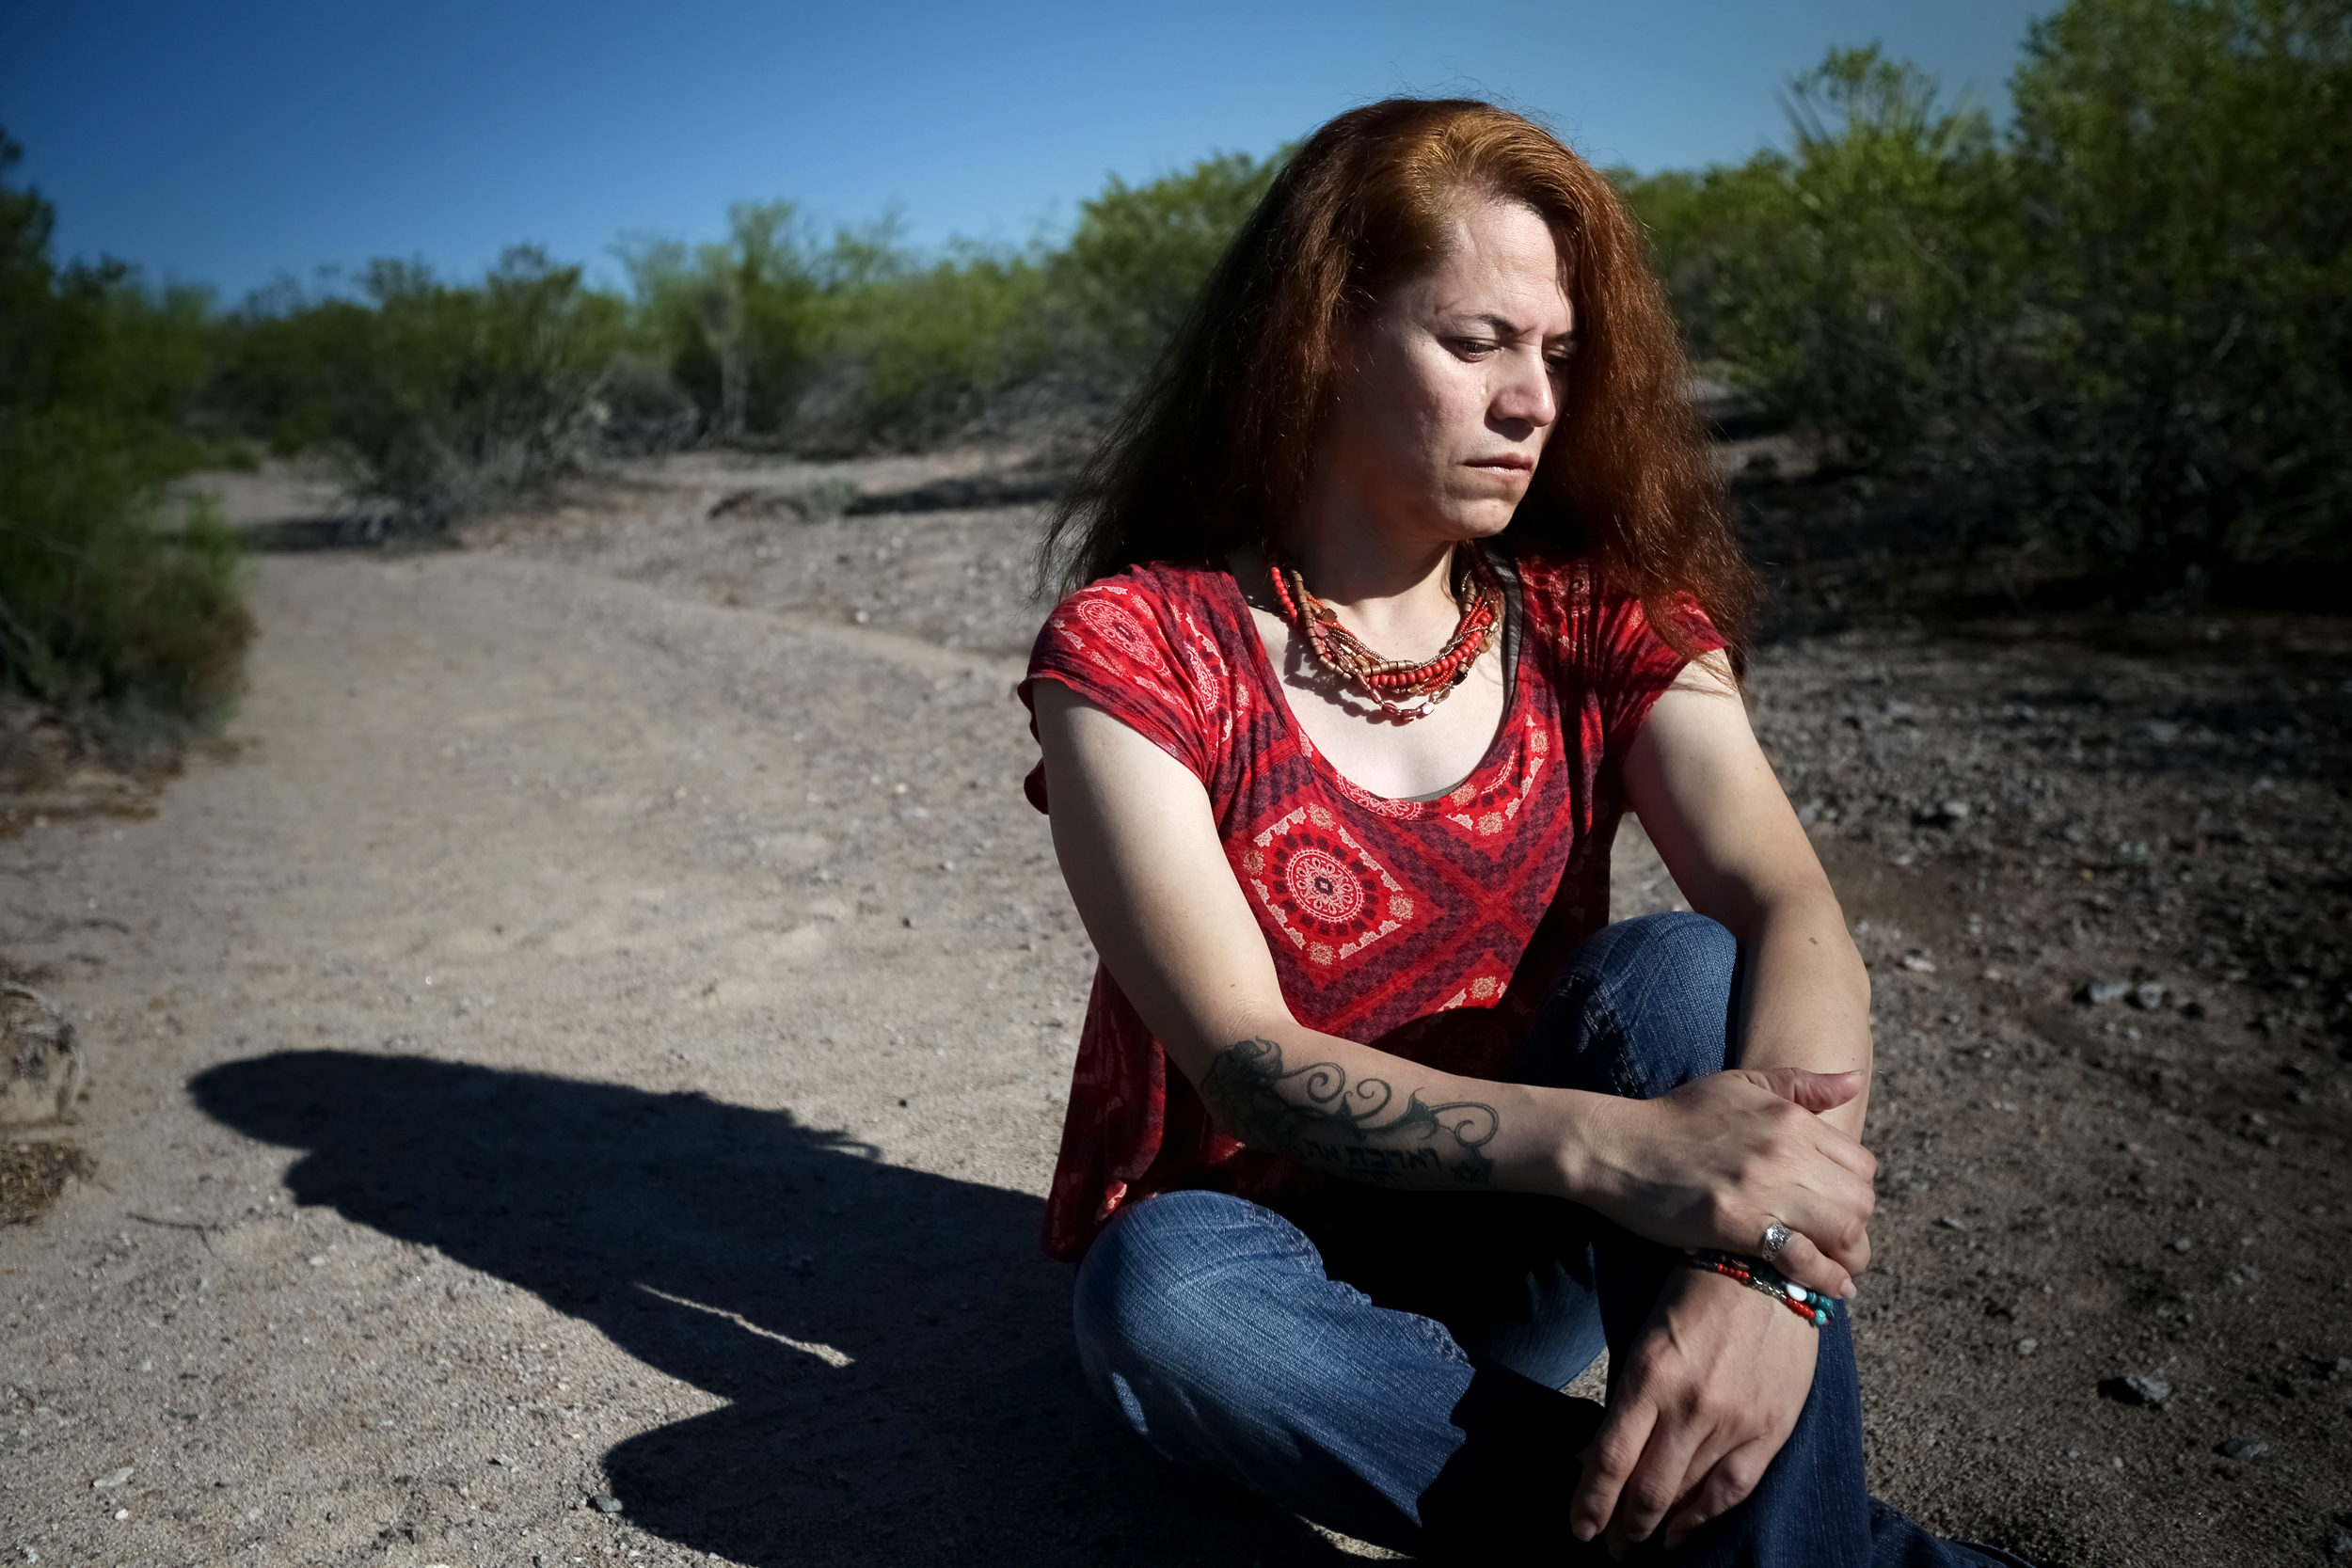 Image: Dulce Rivera, a transgender woman from Central America, was detained by ICE in 2017 and placed in the transgender unit at Cibola.